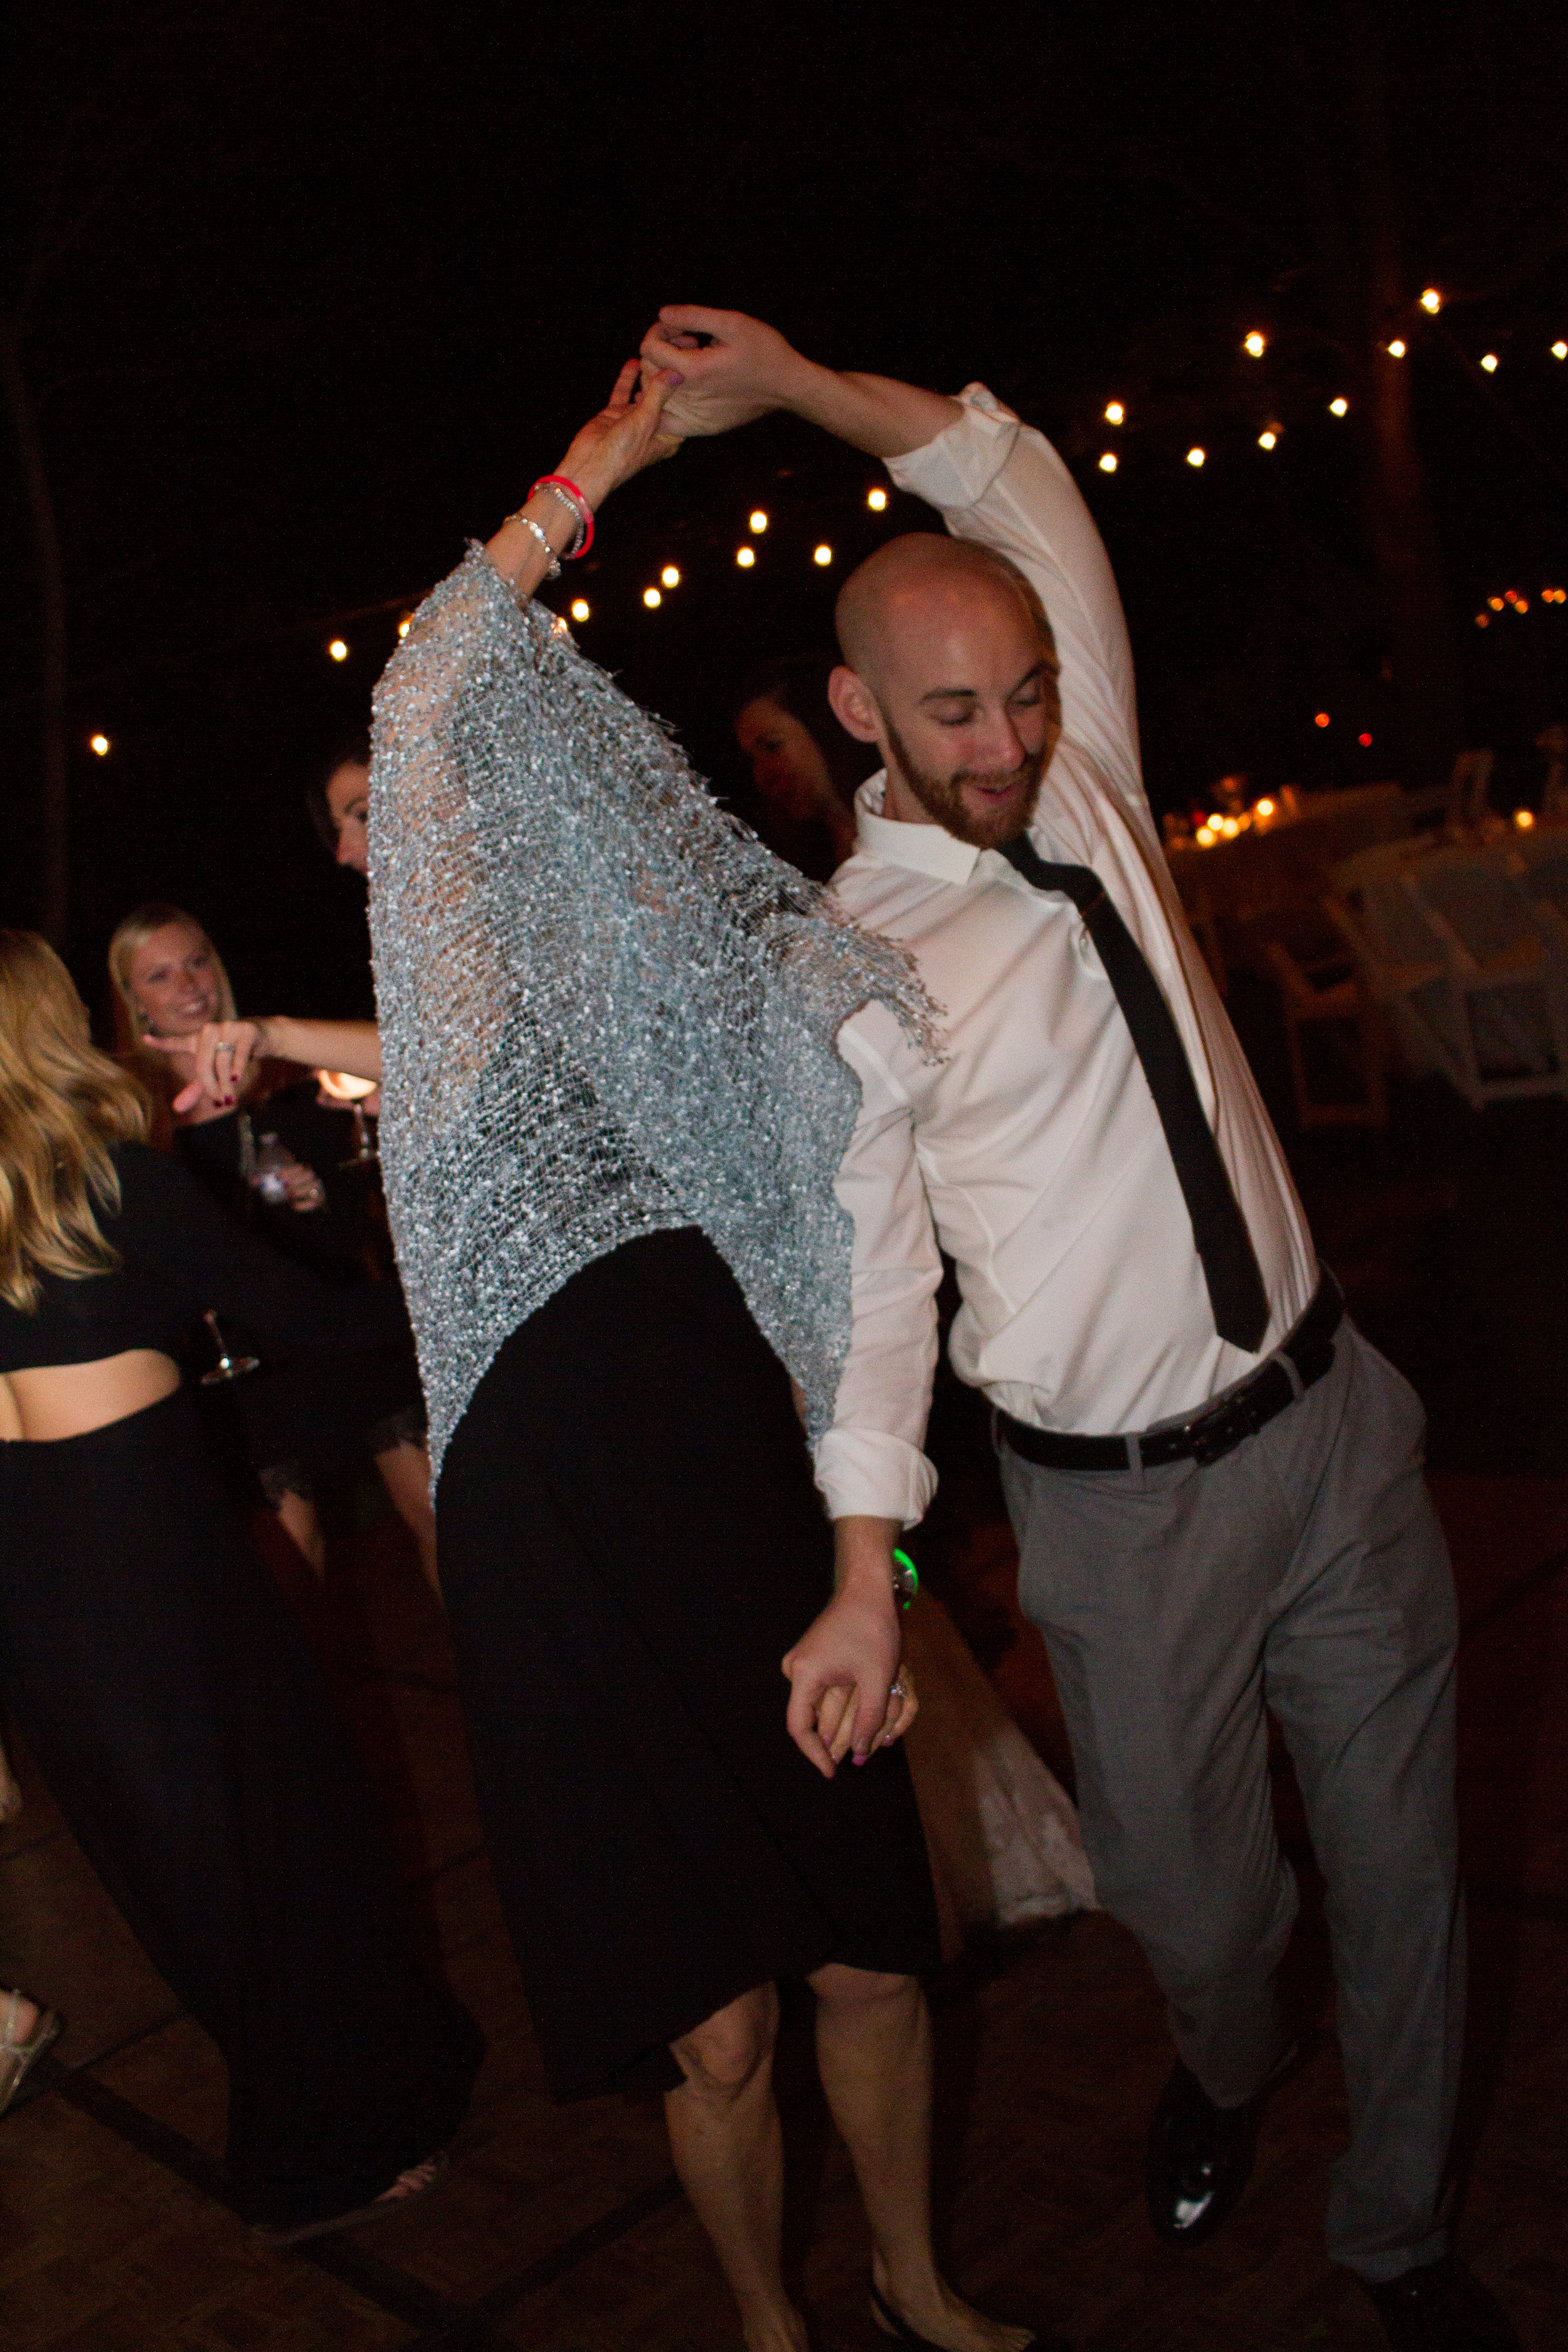 Jacqueline and Shawn Wedding (584 of 597).jpg